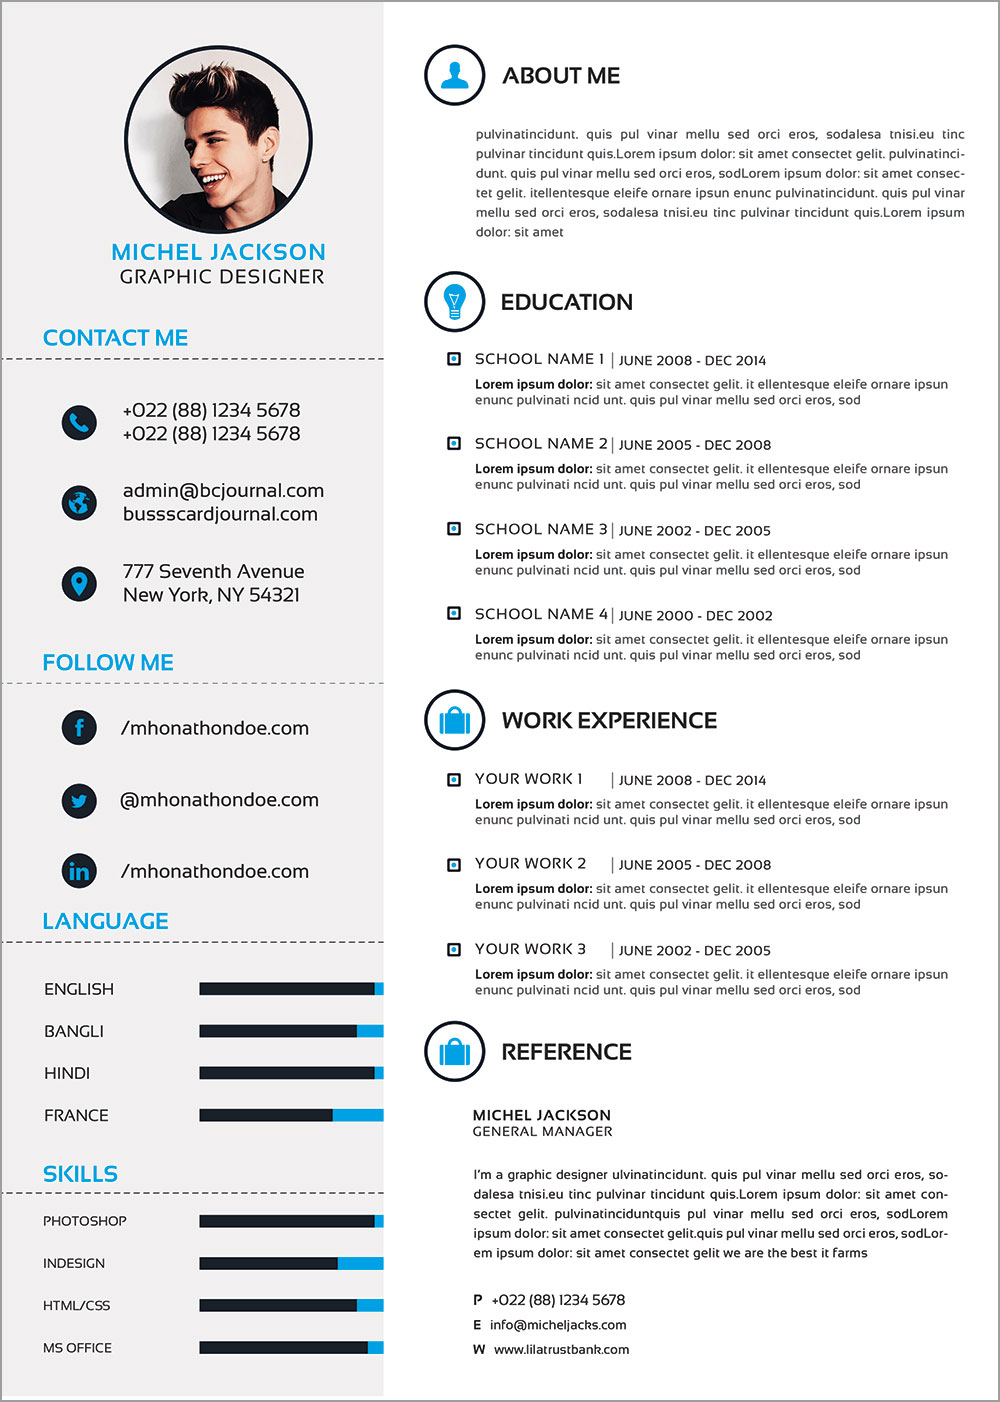 Free-PSD-CV-Template,-Cover-Letter-&-Portfolio-Design-For-Graphic-Designer-2